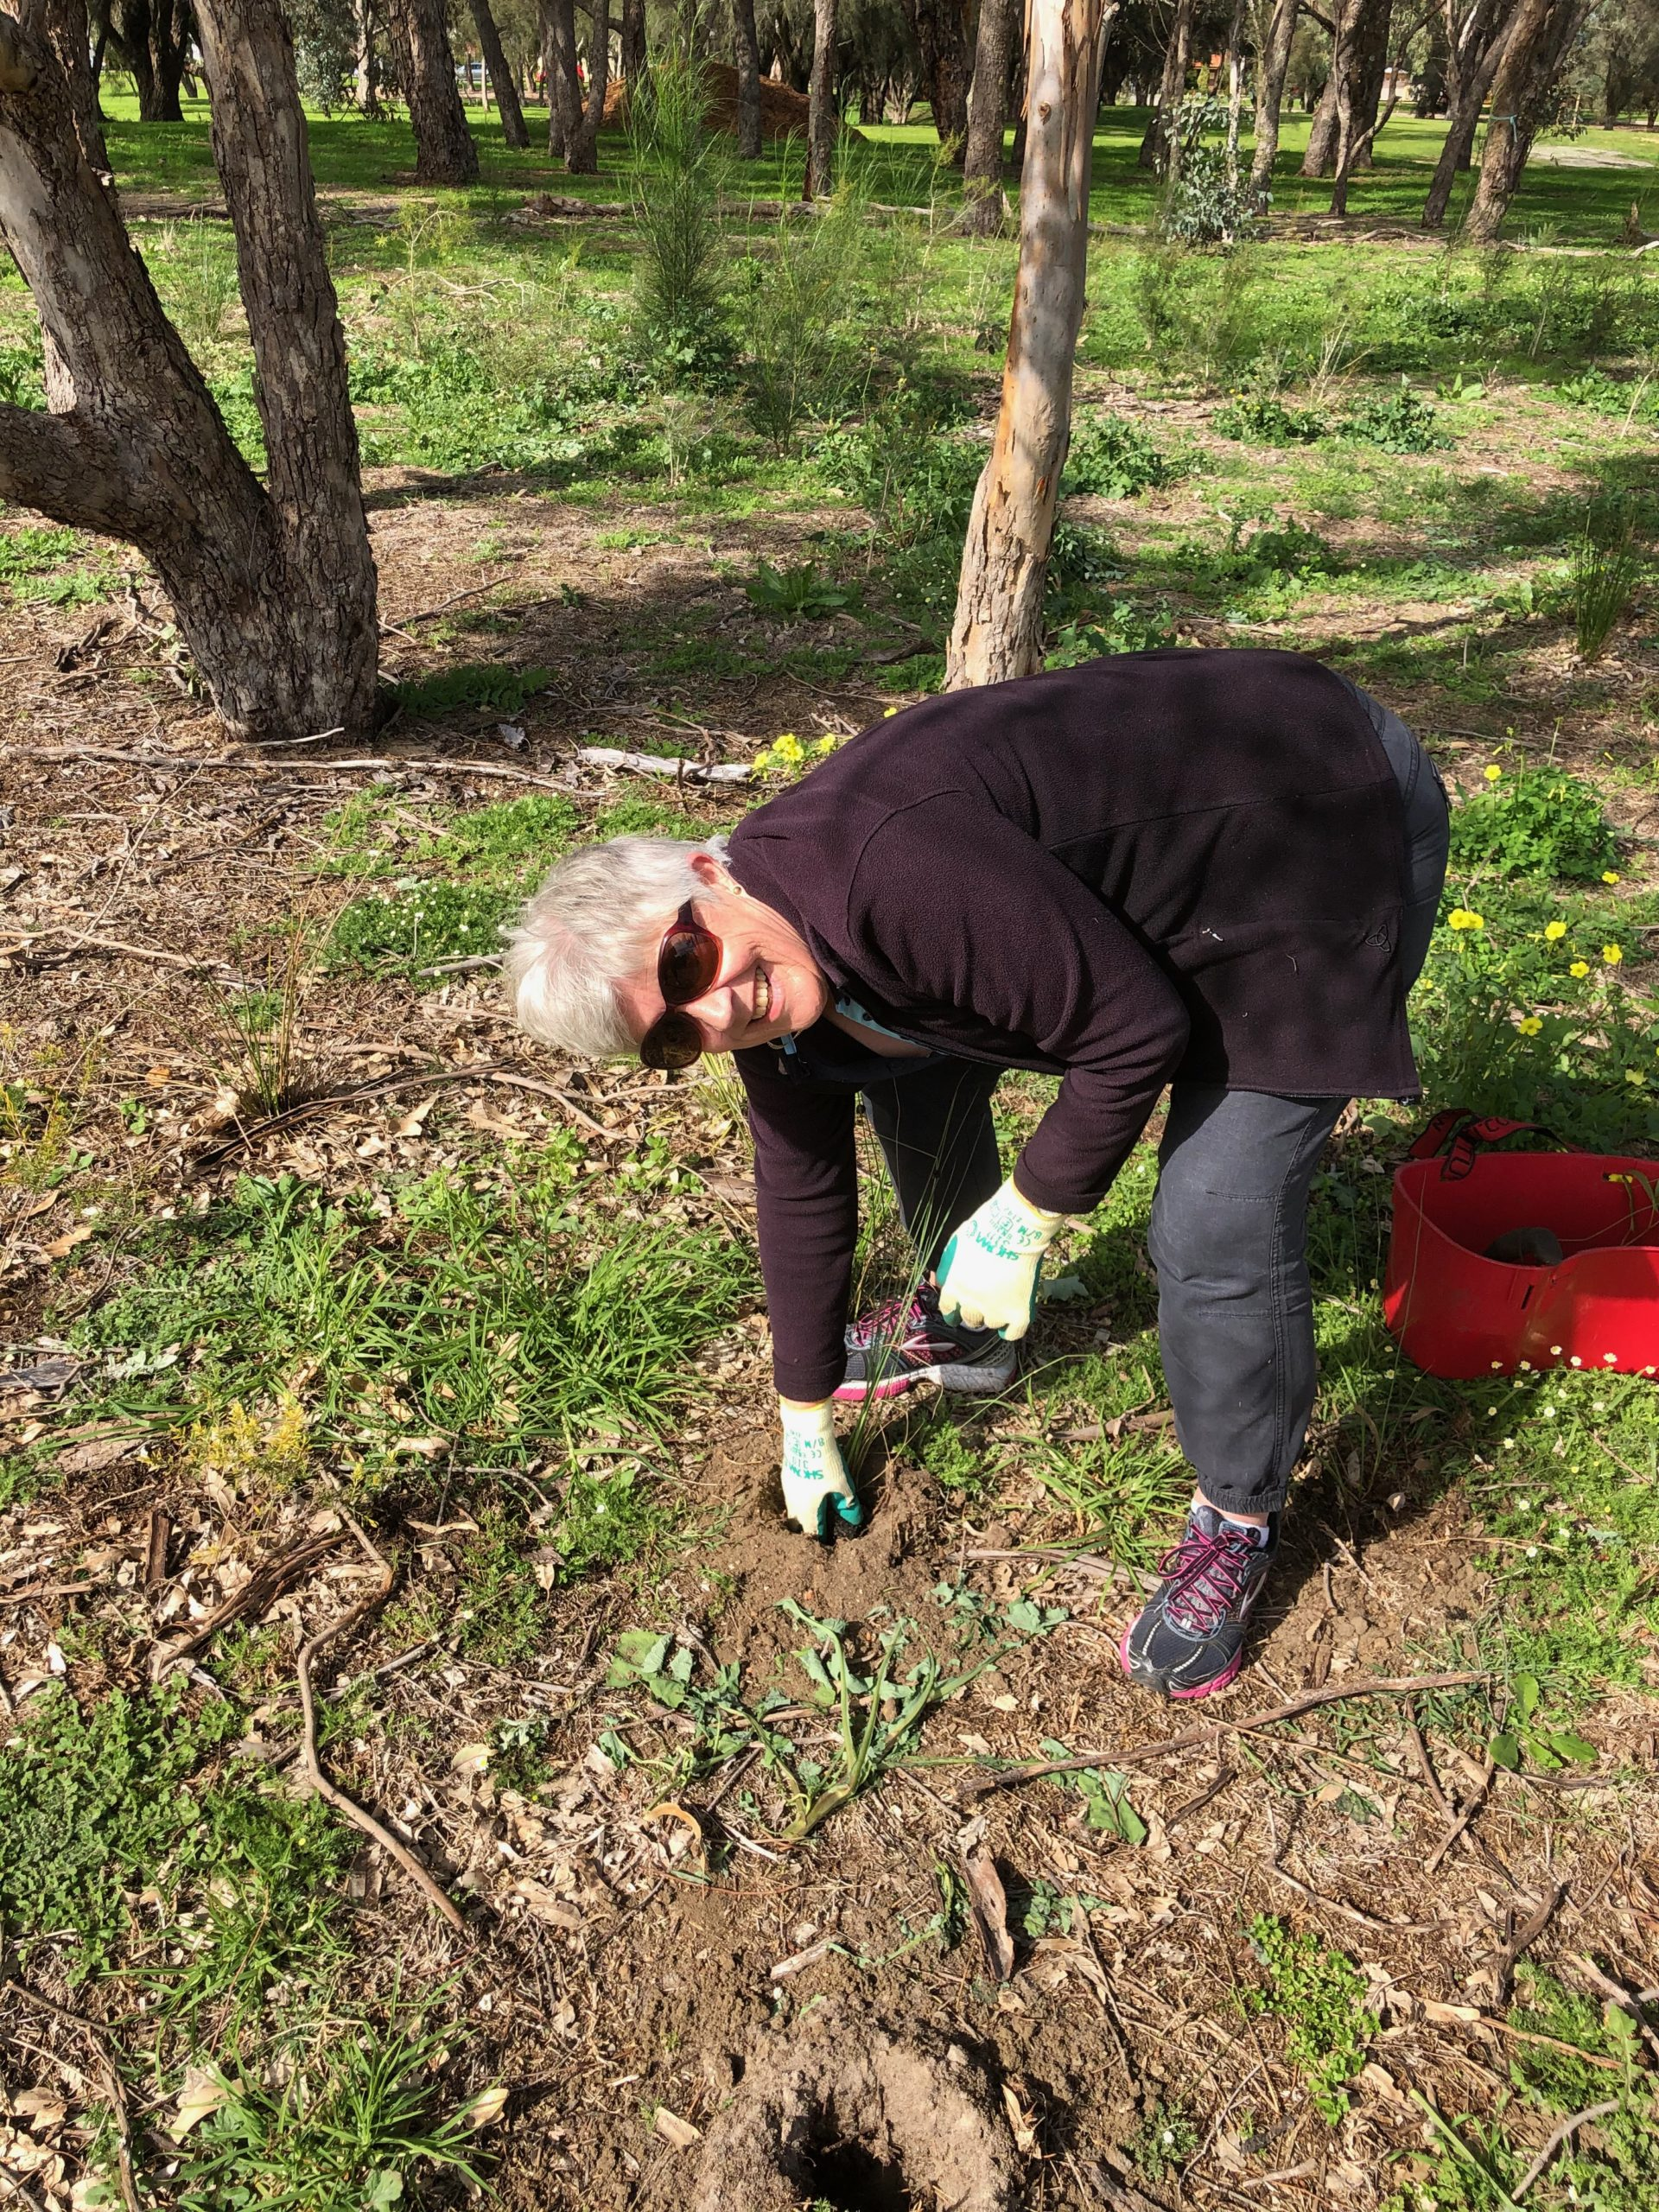 Glynis is bending over to plant a seedling